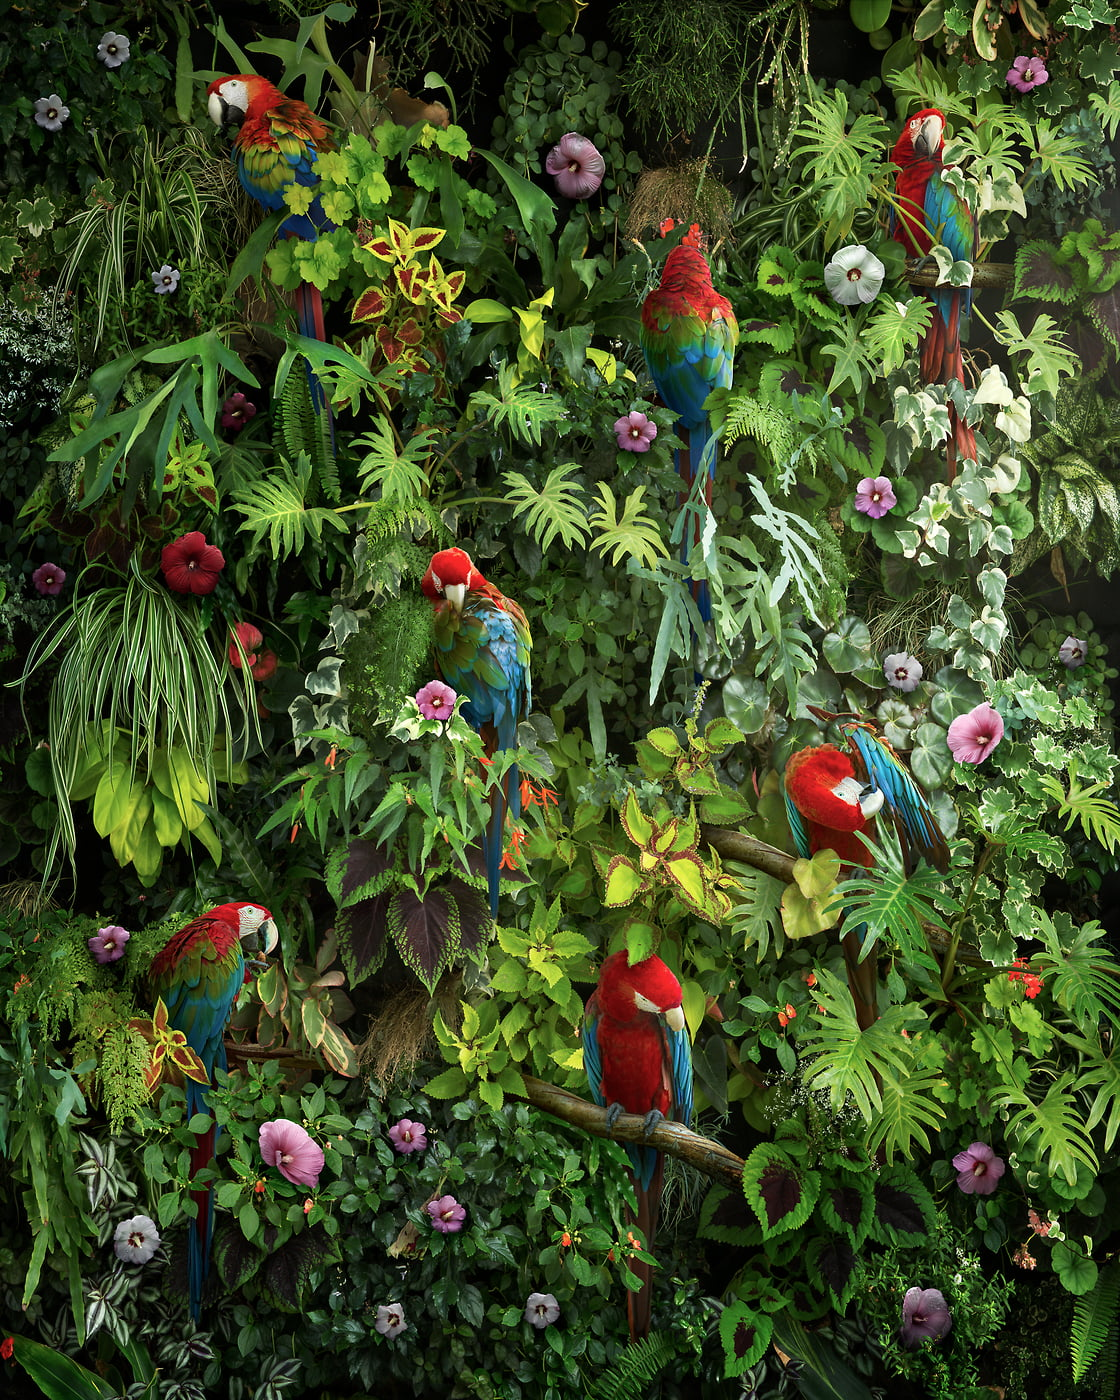 180 megapixels! A very high resolution photographic artwork of a living wall with foliage, flowers, plants, greenery, ferns, parrots, macaws and birds; artwork created by artist Nick Pedersen